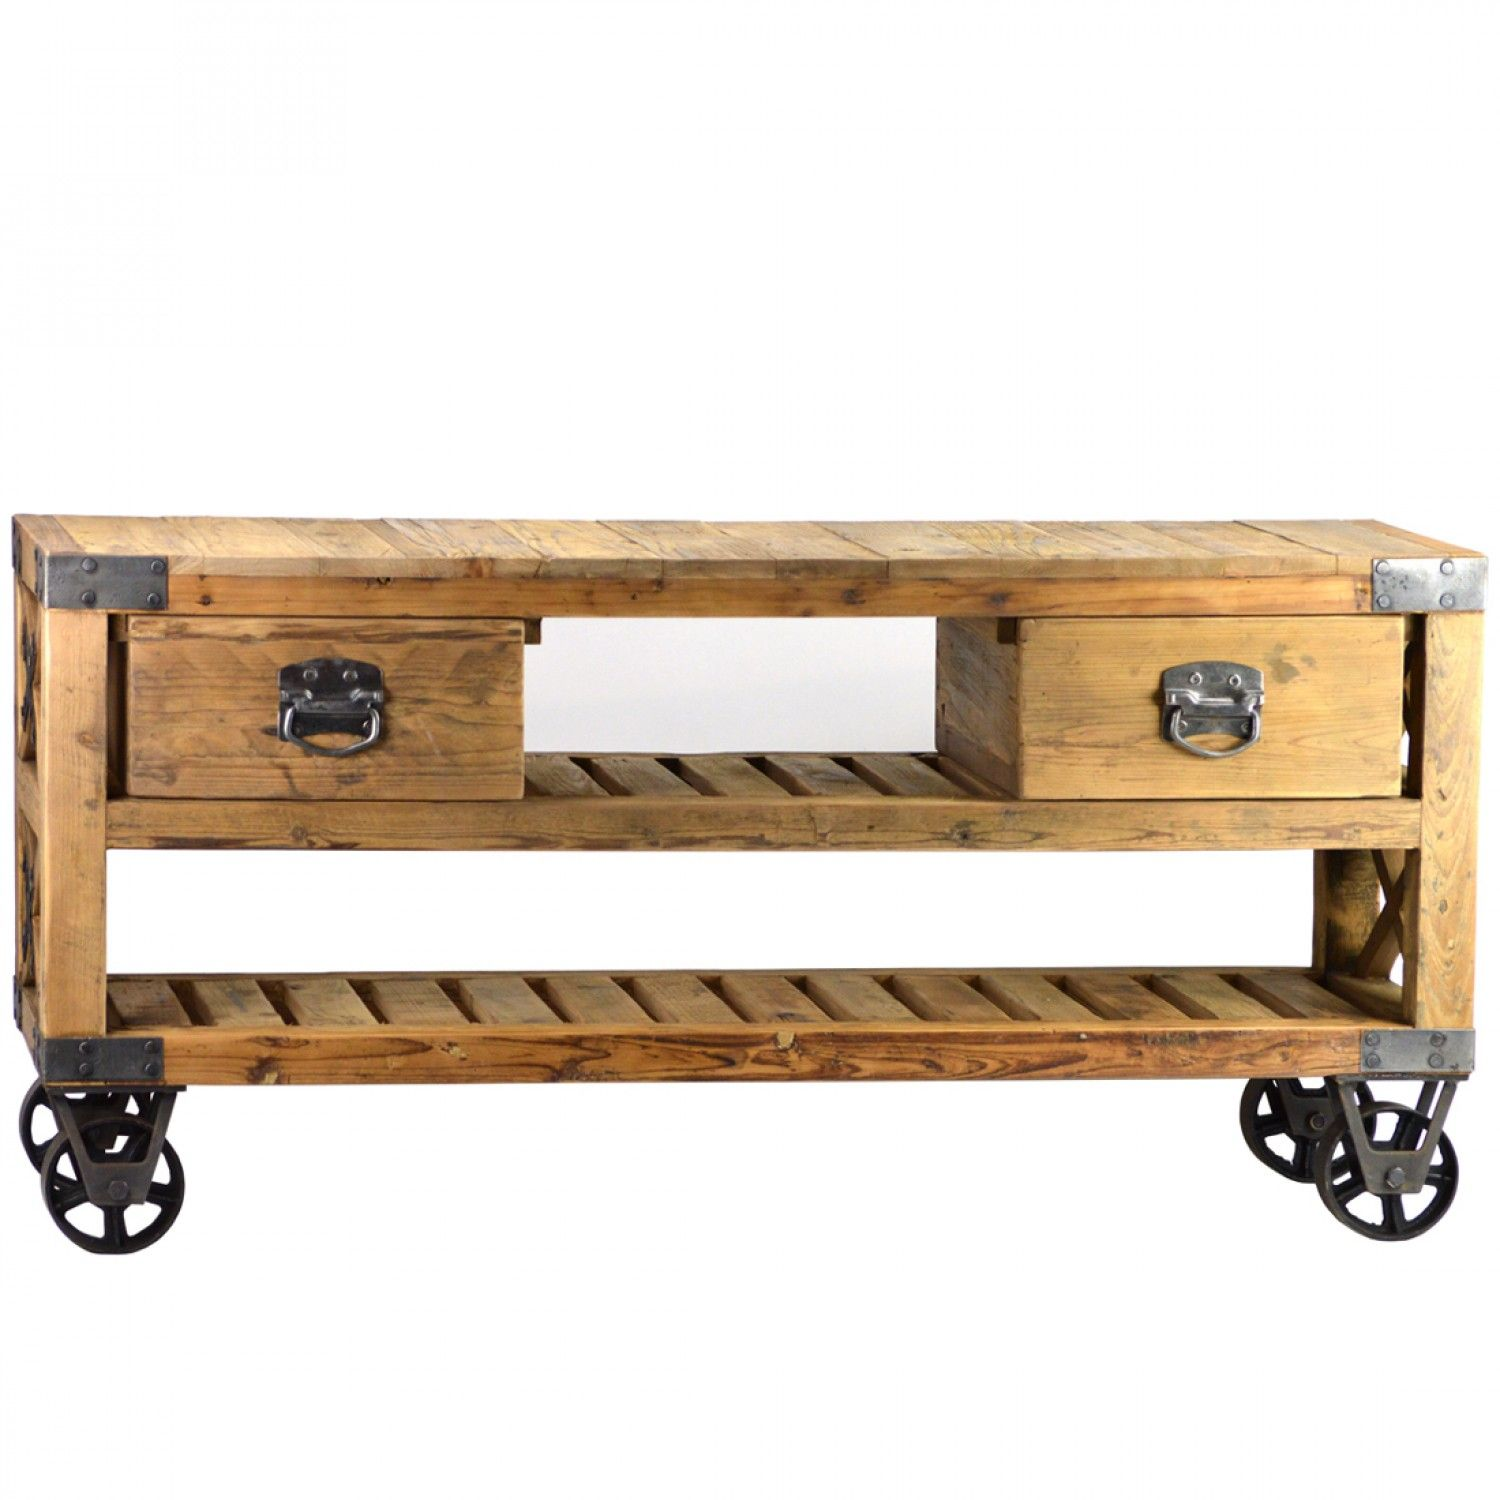 French Rustic Industrial Style Plasma Tv Stand 1 390 00